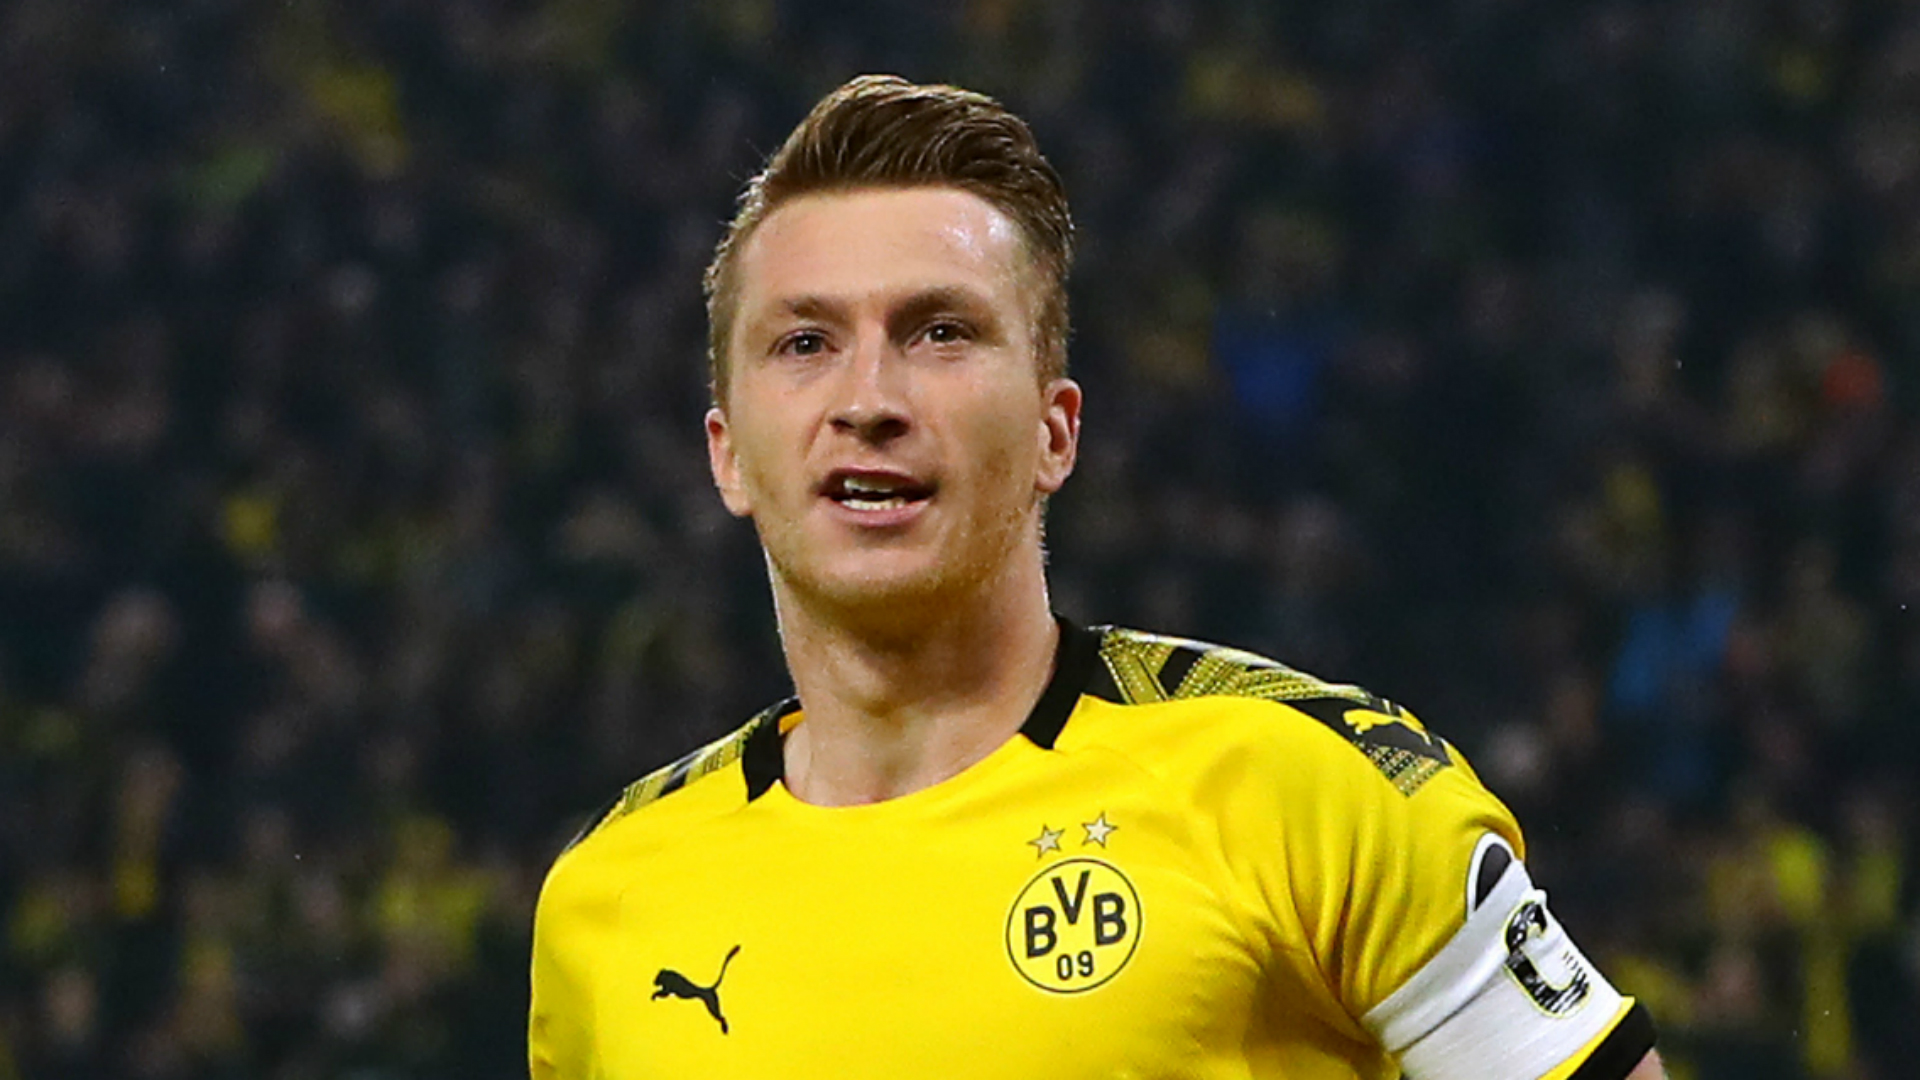 Dortmund hero Reus explains why he could never have joined Bayern